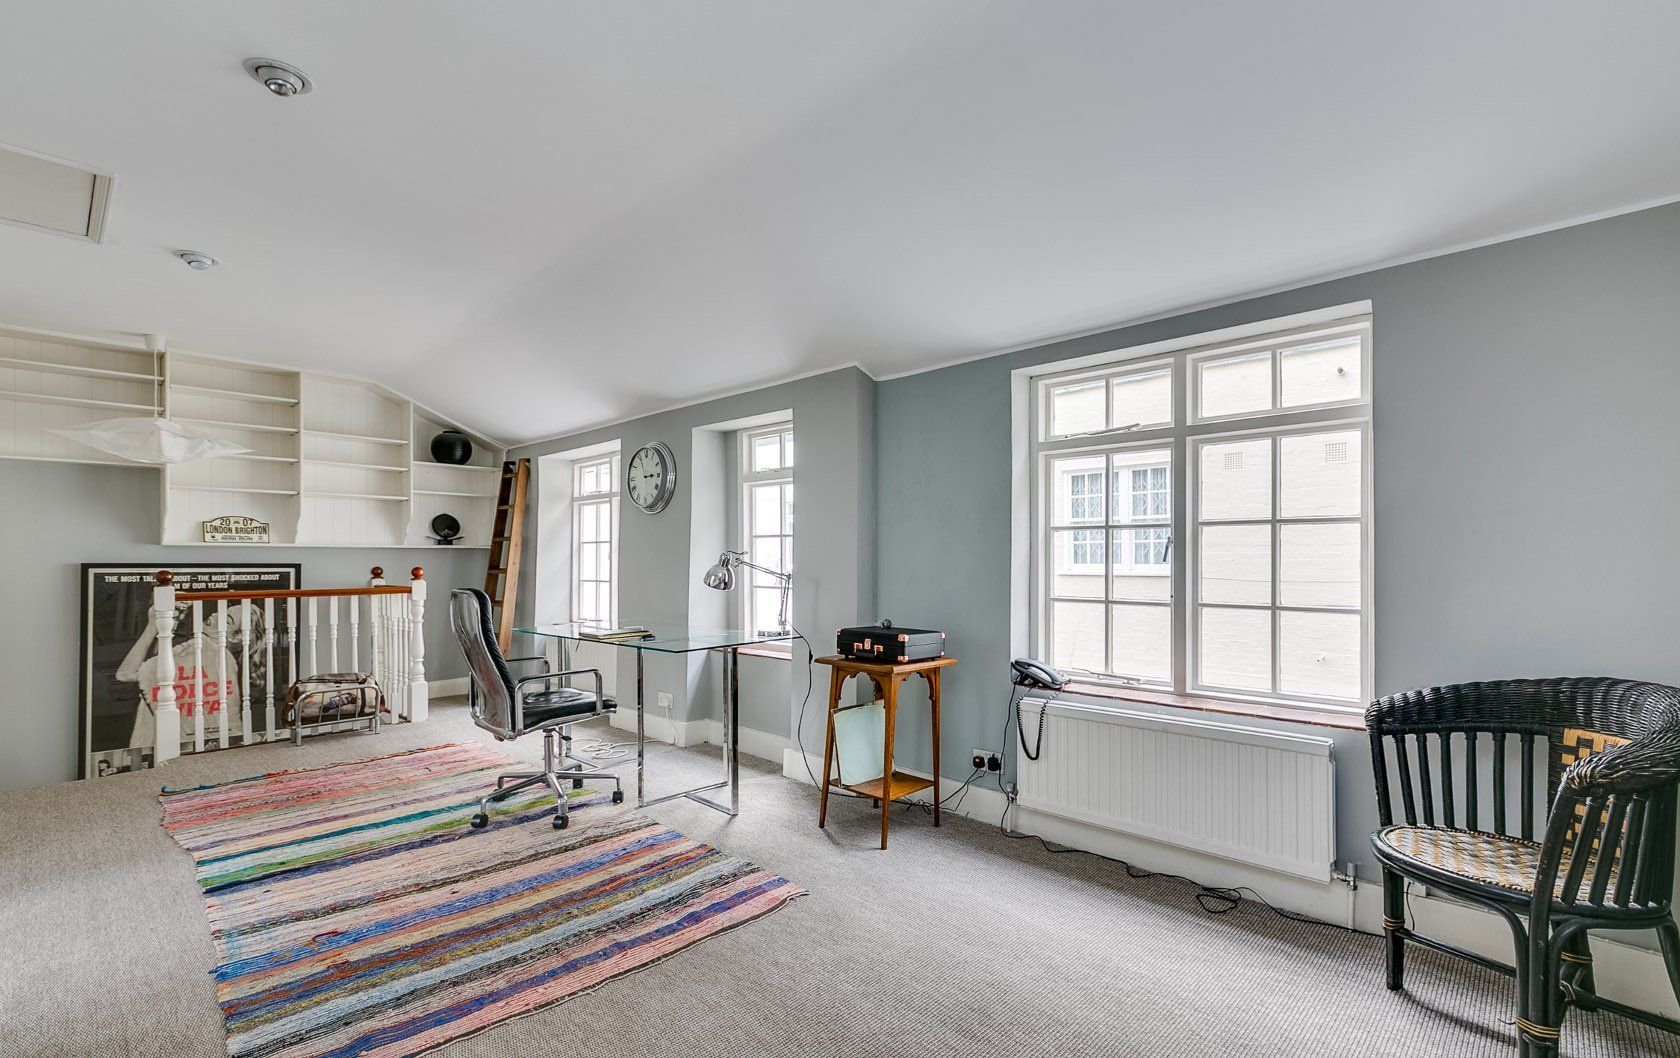 Our property of the month is this charming mews house, ideally located on a quiet street in Kensington. Light and airy in design, the apartment comes with planning permission for interior changes already obtained, making it an incredible opportunity for new owners to add their own touch to the place! #londonapartment #kensingtonholidayhome #vacationproperty #londonblog #kensingtonapartment #londonproperty #londonholidayhome…